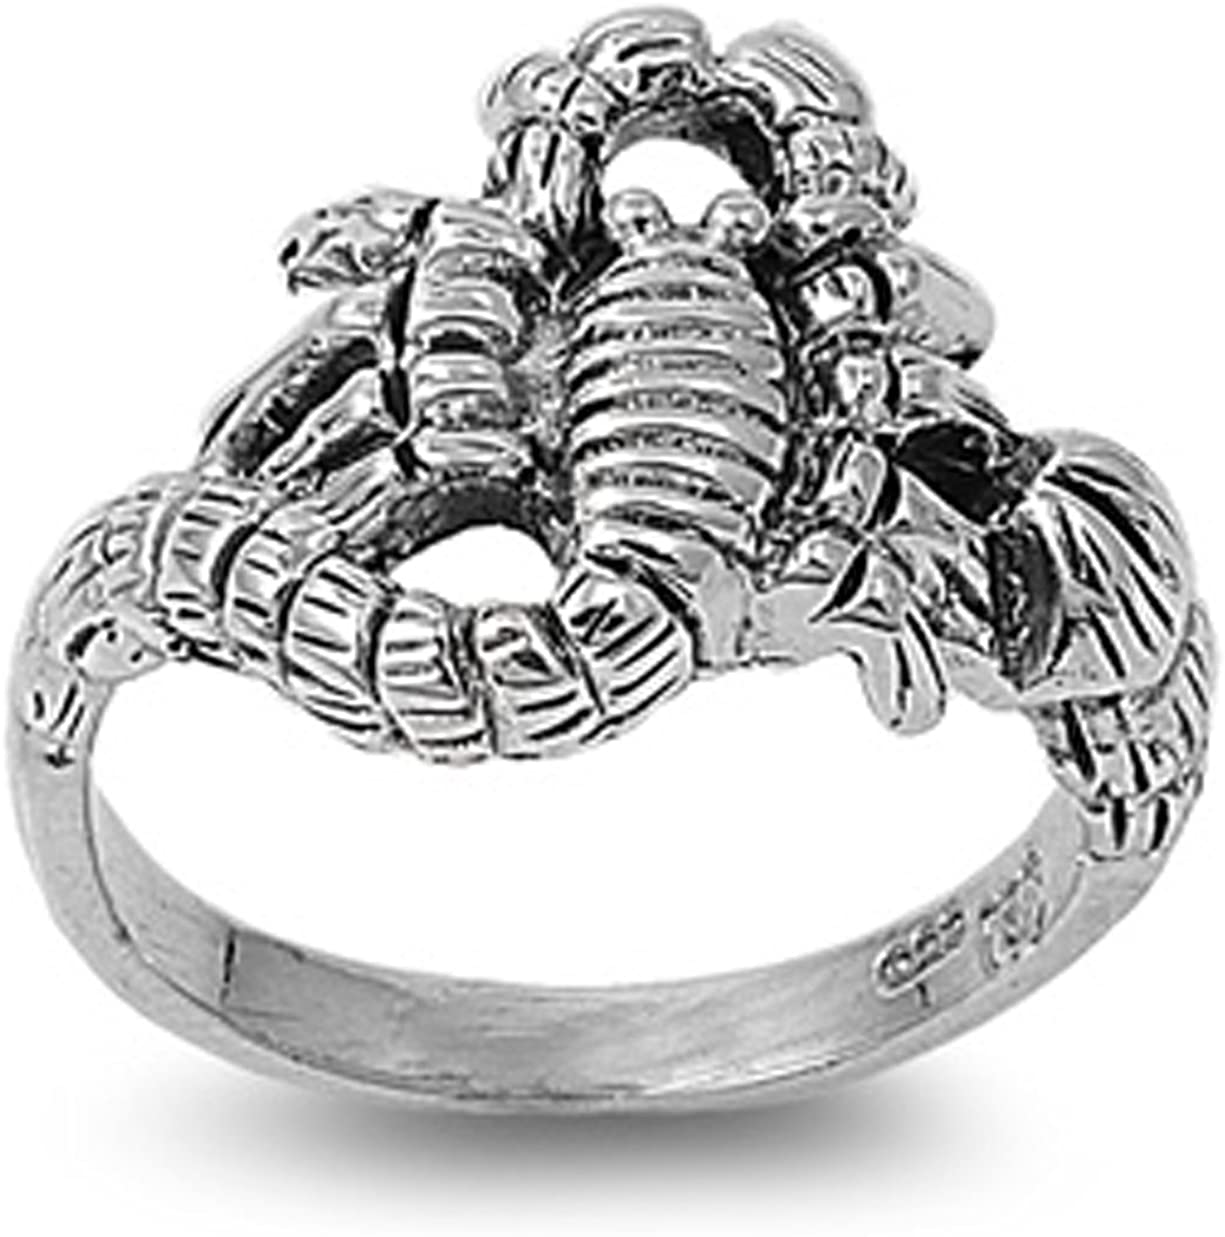 STERLING SILVER RING SPIDER 925 NEW SIZE 5-11 NEW